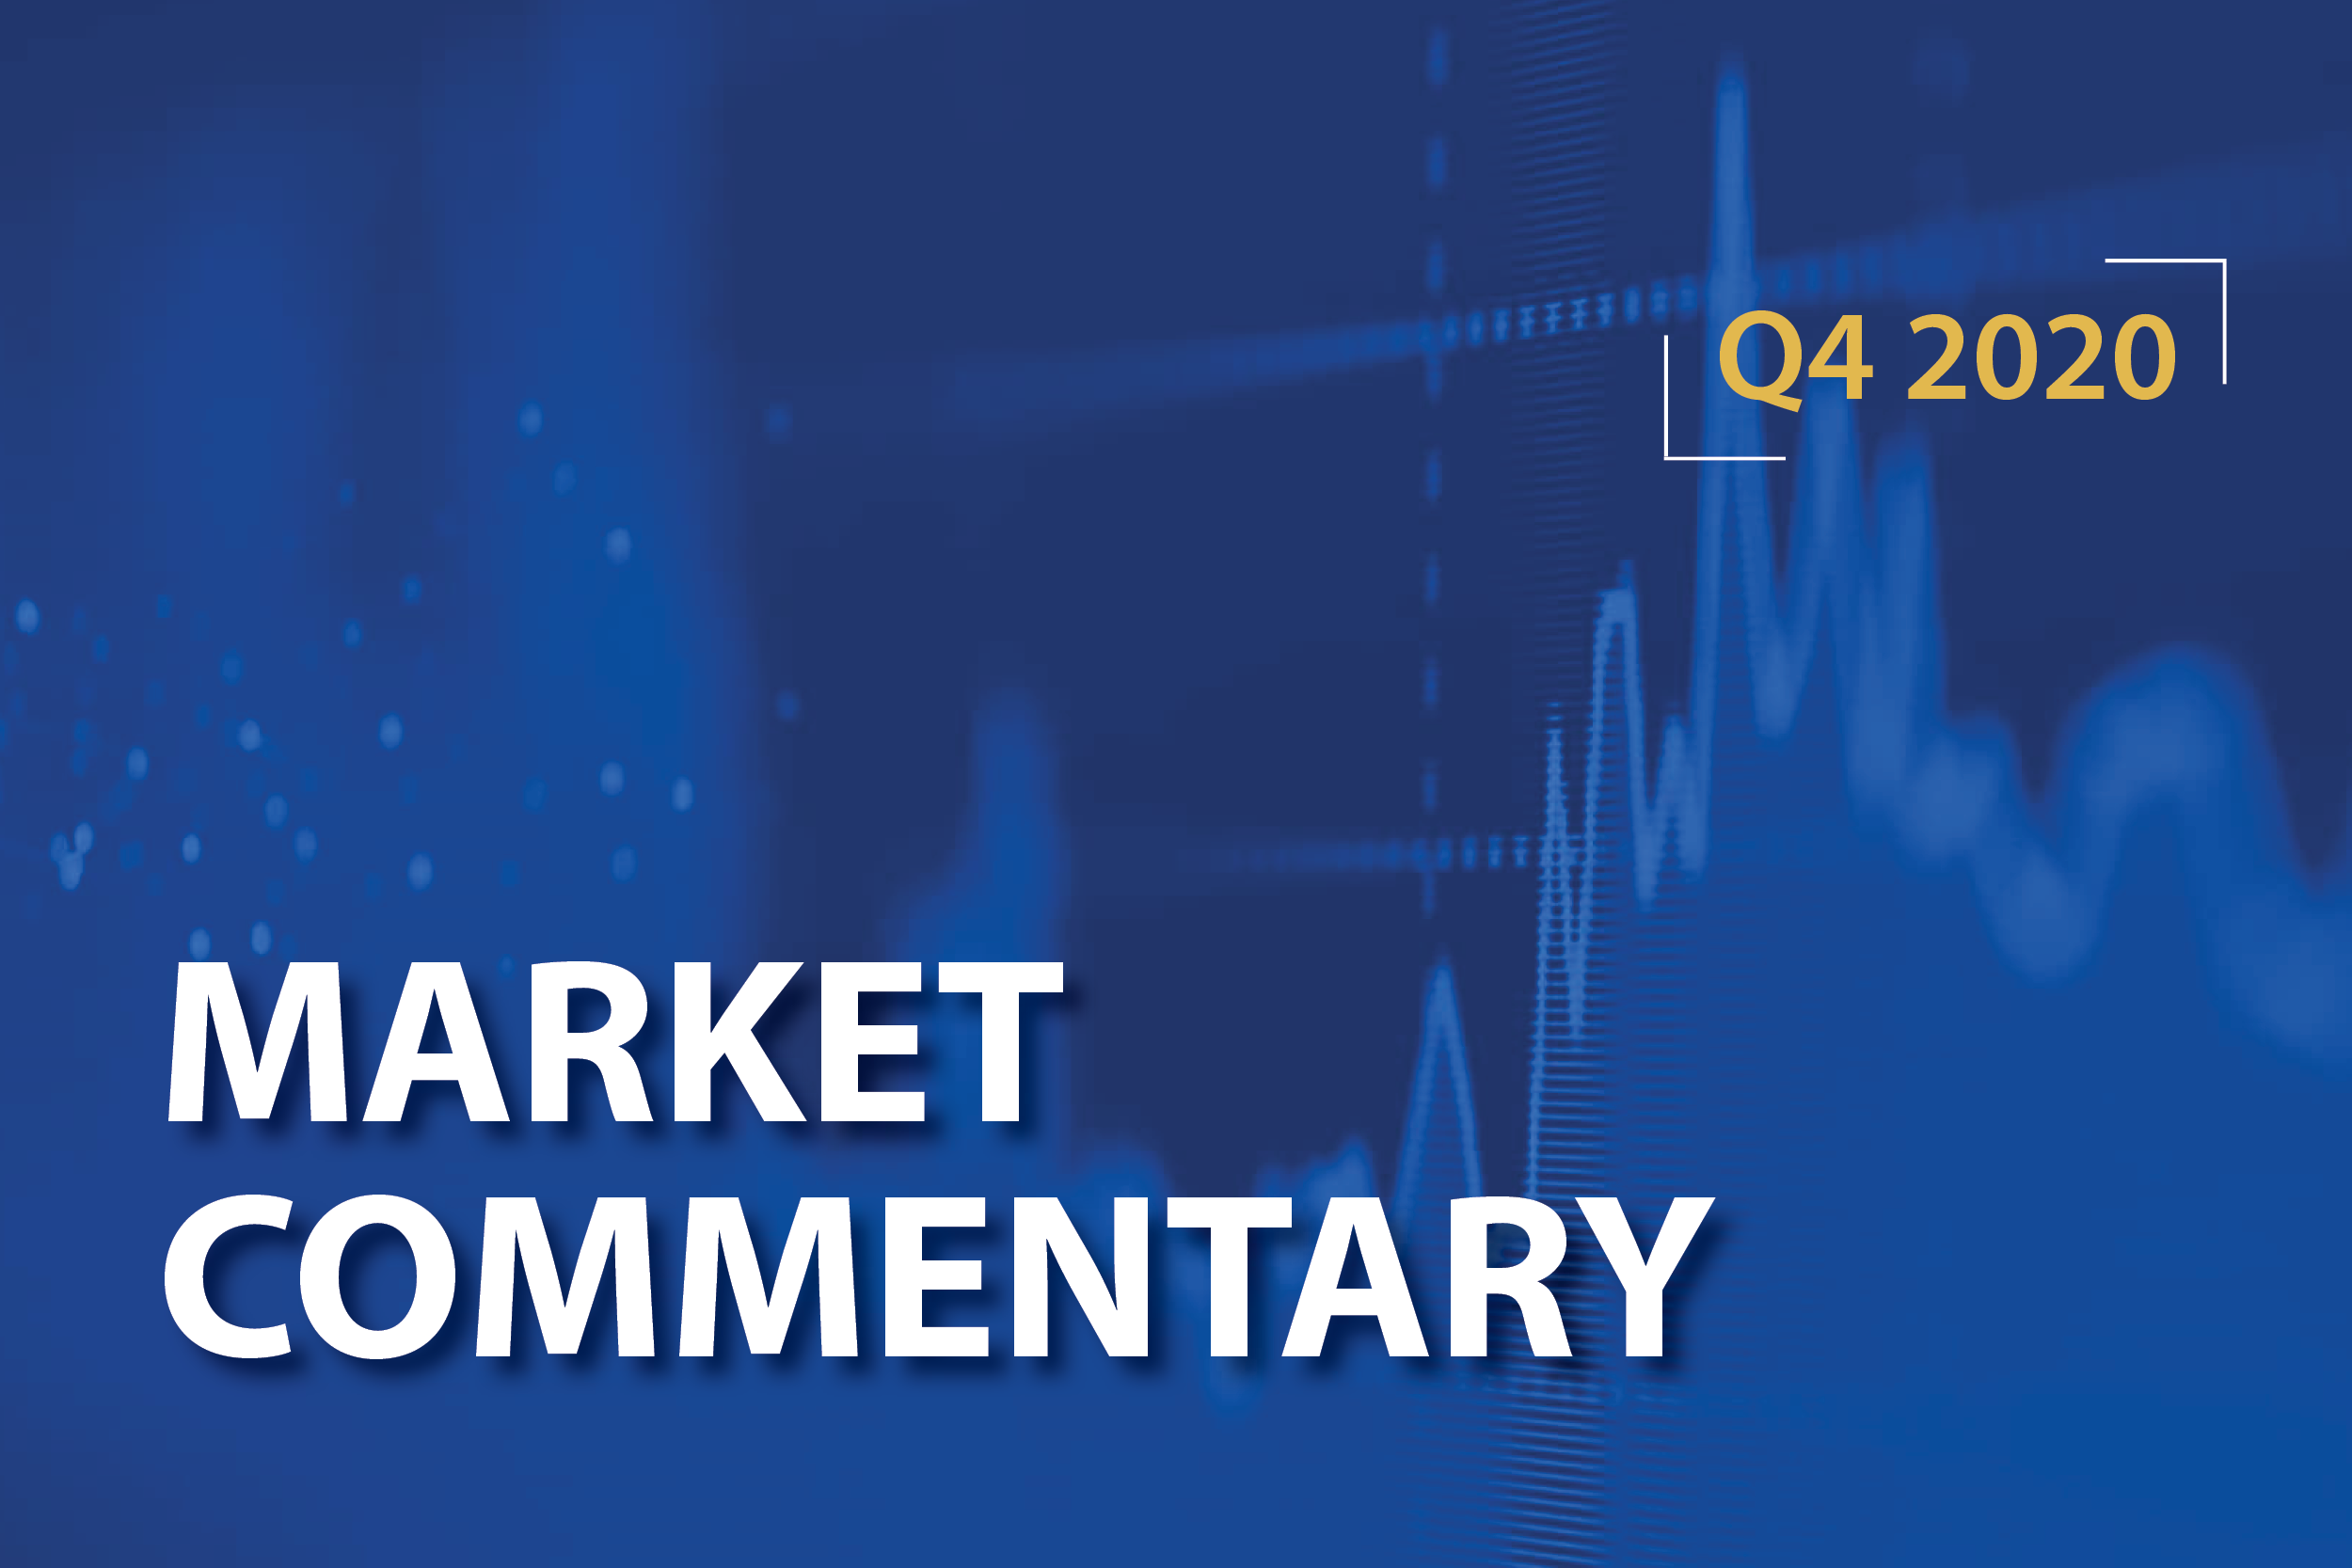 Market Commentary Q4 2020